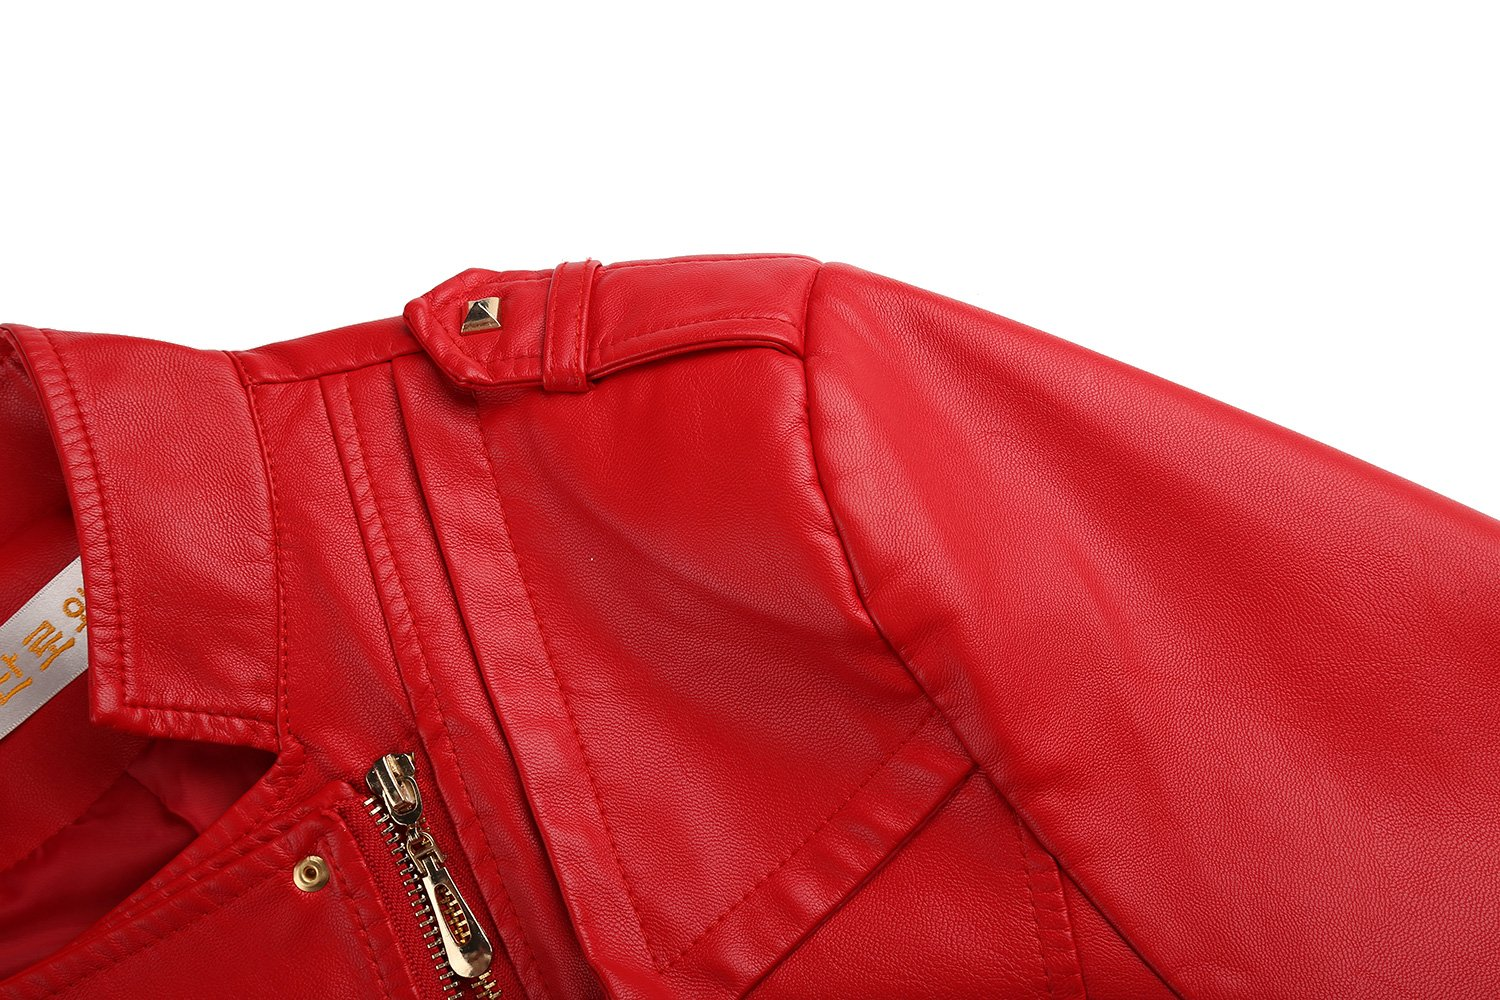 Tanming Women's Slim Zipper Color Faux Leather Jacket Red (Large, Red) by Tanming (Image #3)